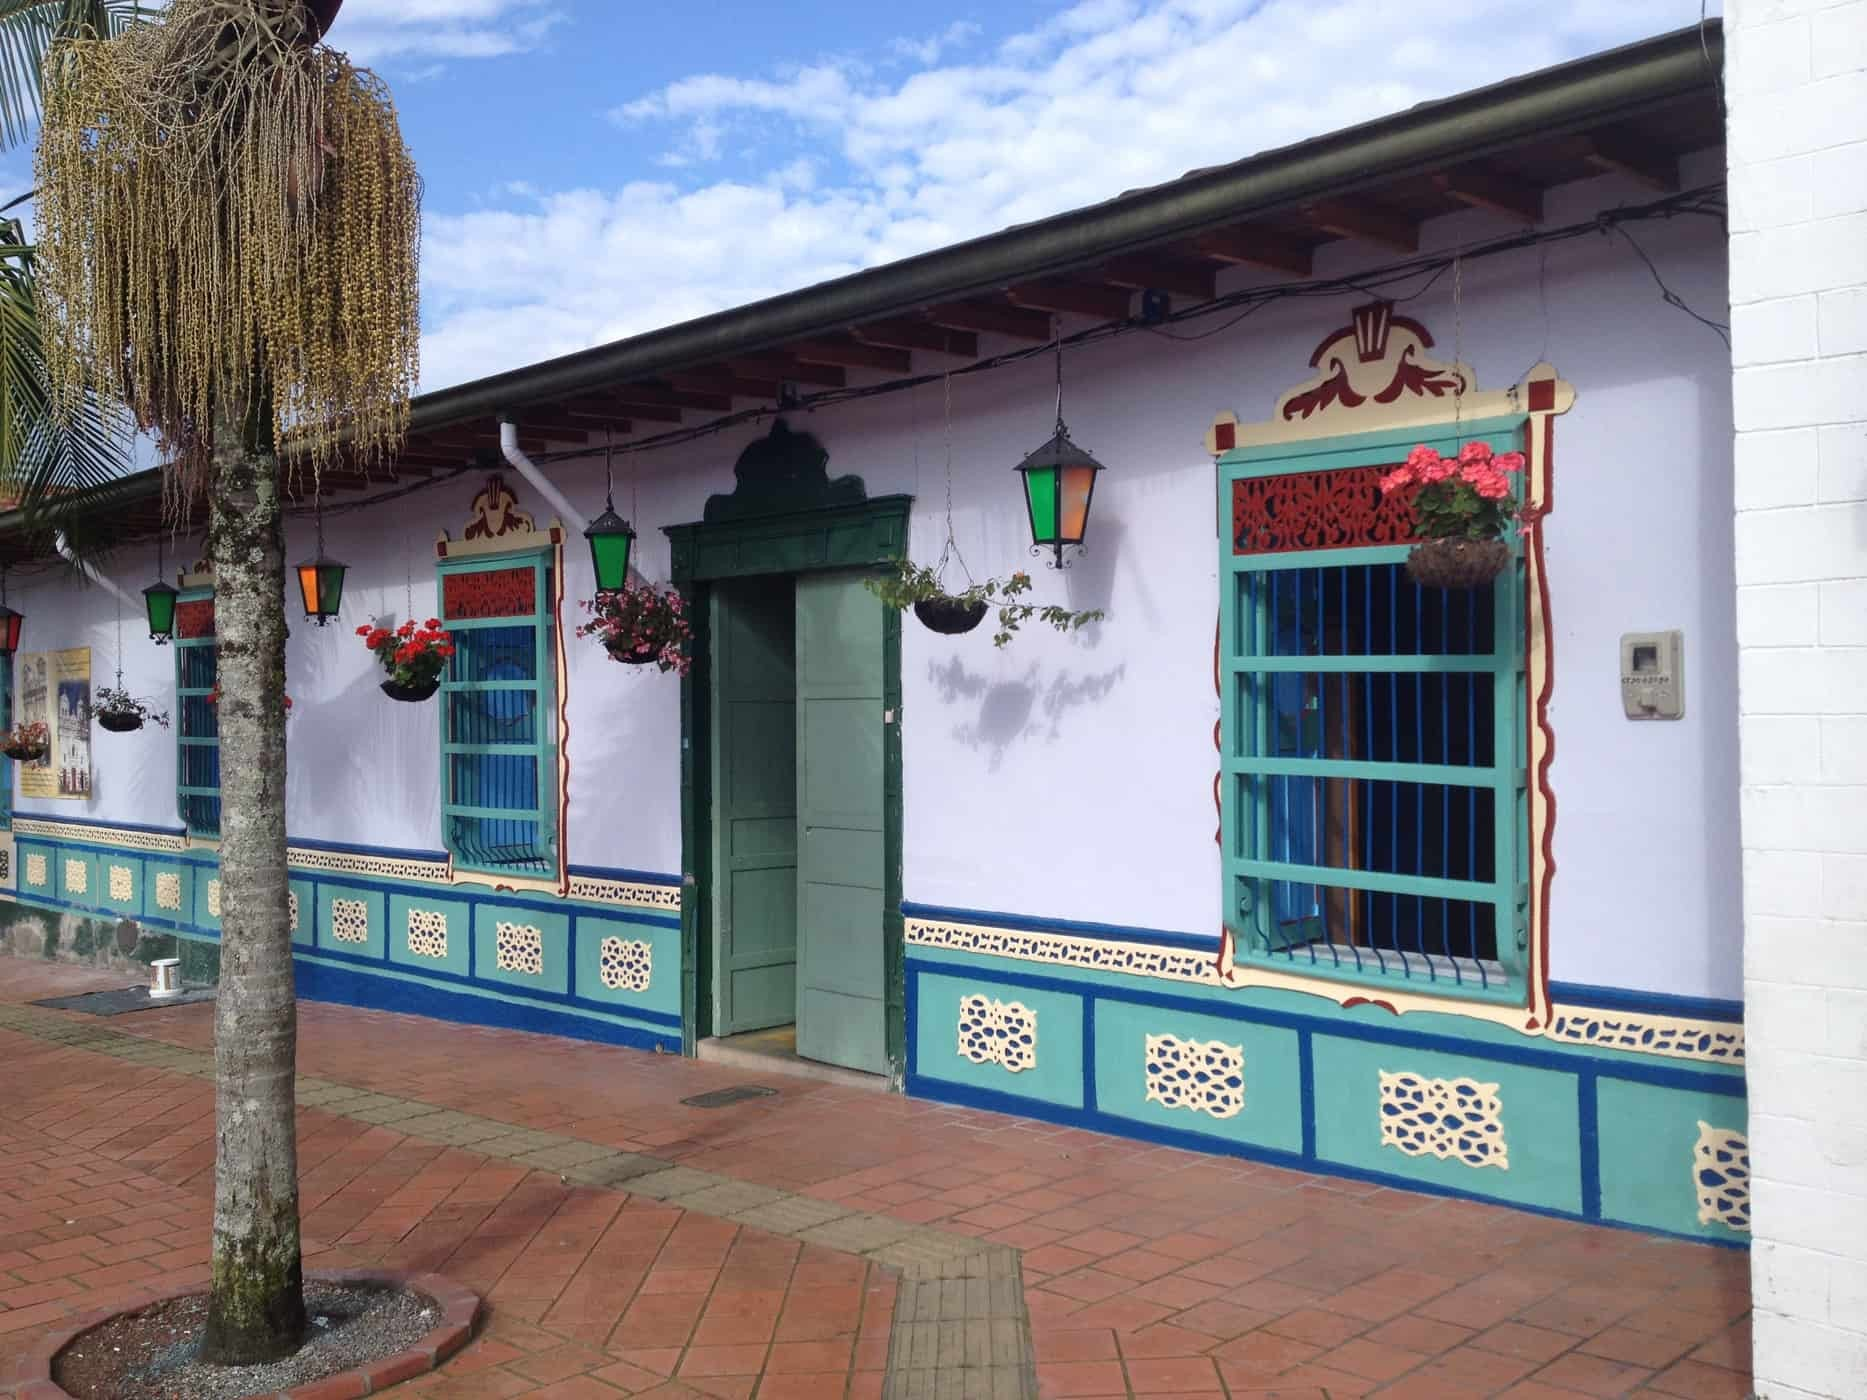 Streets of Guatapé, Colombia.